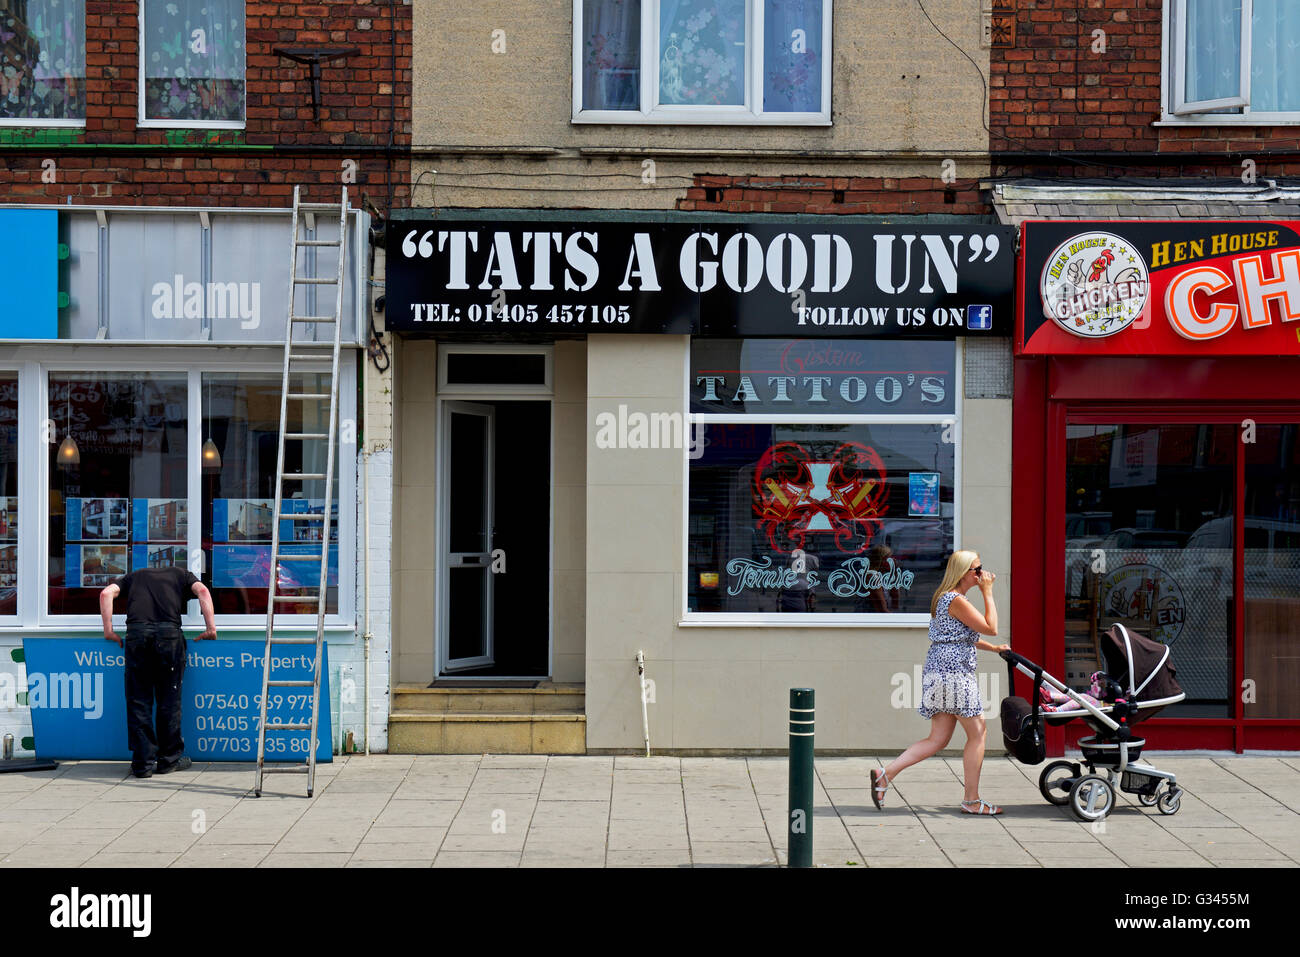 Tattoo parlour in Goole, East Yorkshire, England UK - Stock Image